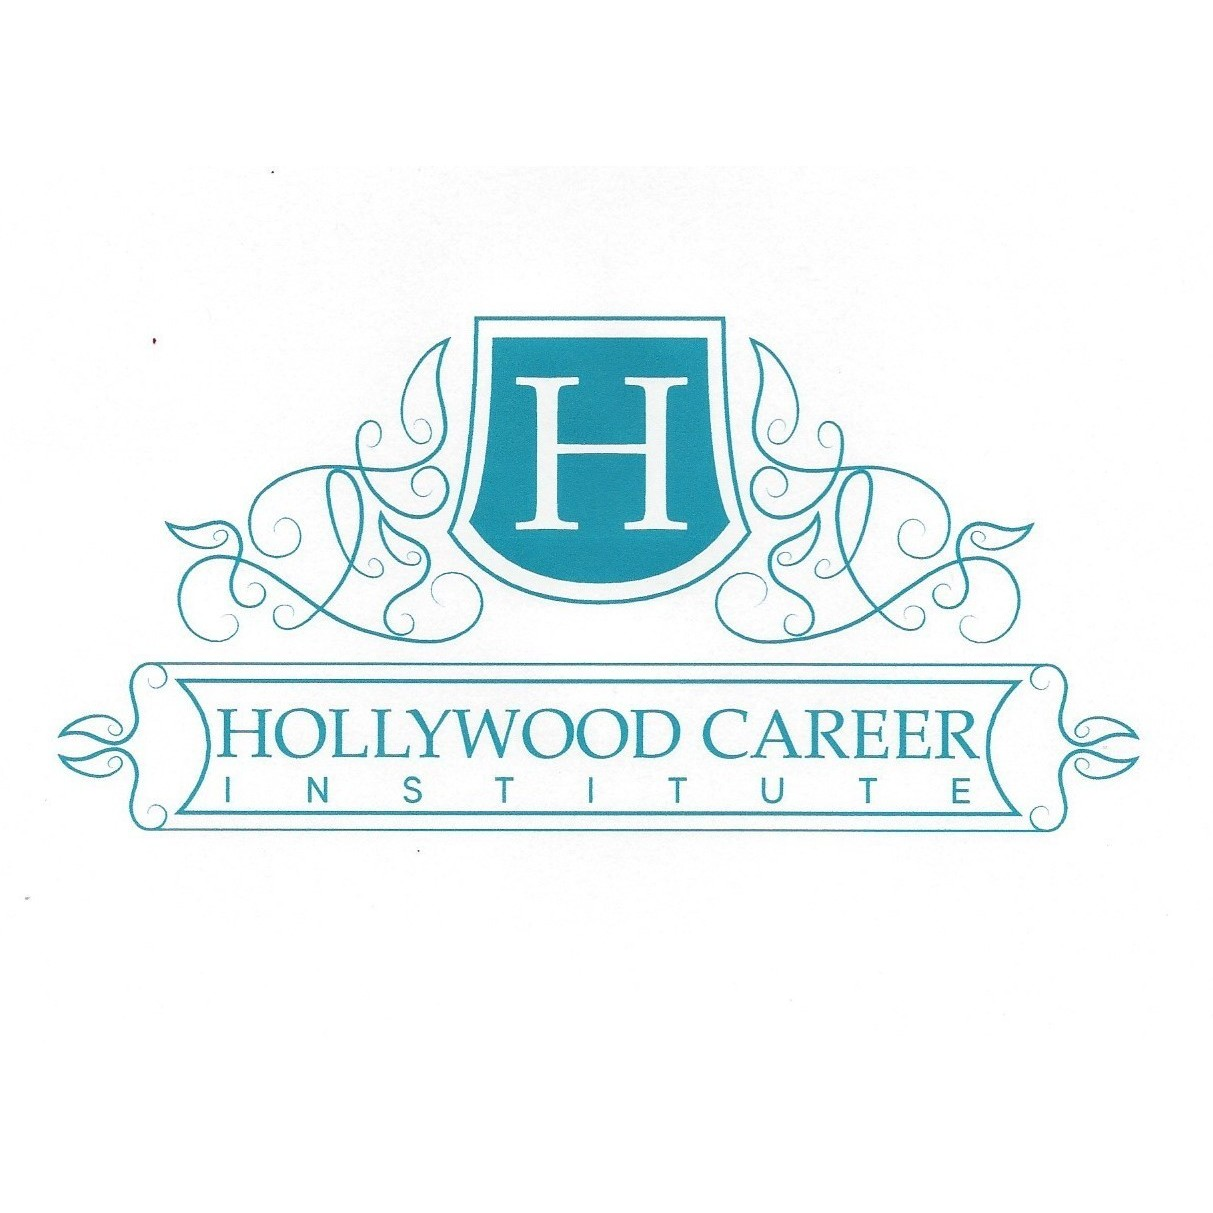 Hollywood Career Institute, LLC